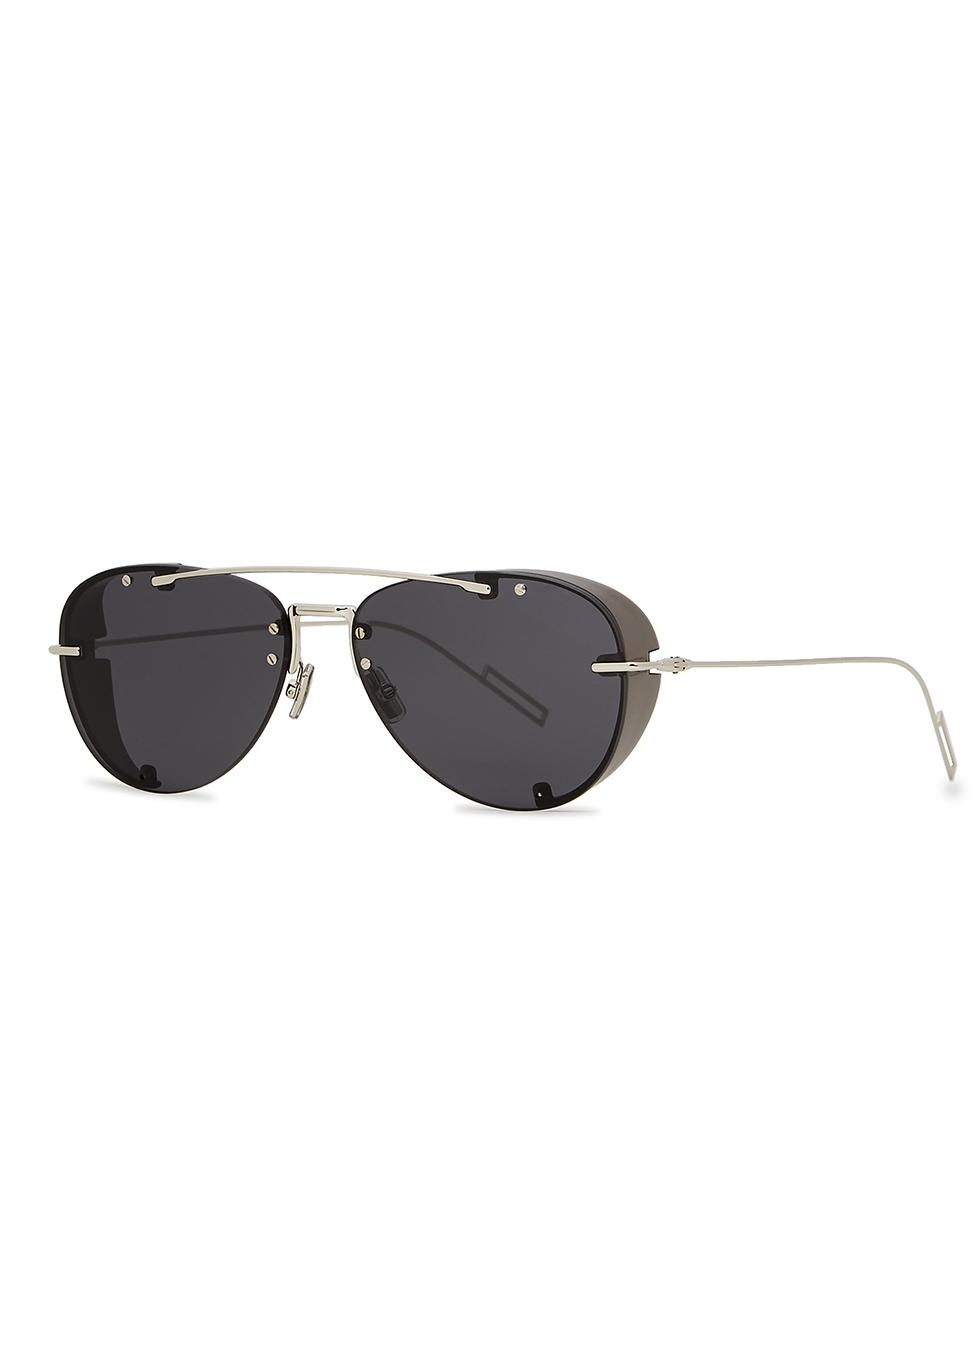 6244f6c2c6 Men s Designer Sunglasses   Eyewear - Harvey Nichols